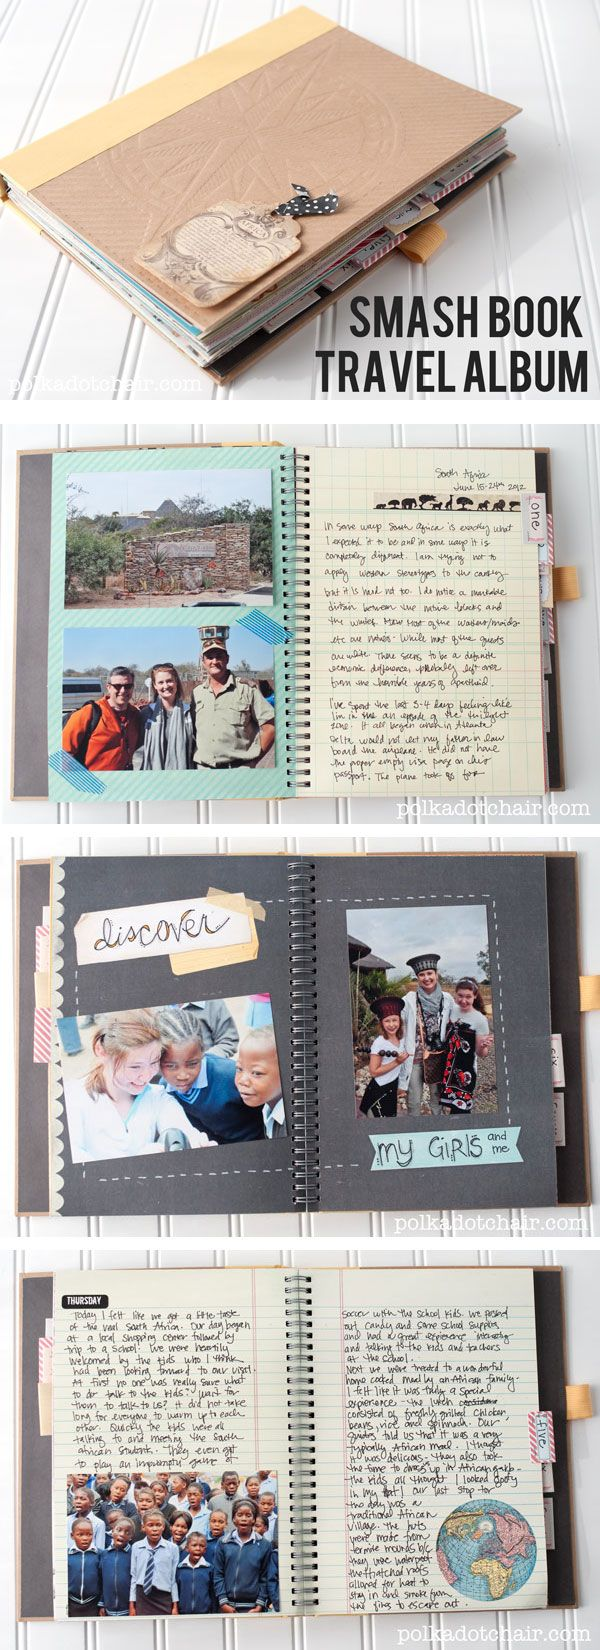 How to scrapbook journal - Ideas For Using A Smash Book To Keep A Travel Journal And Scrapbook Of Your Vacation